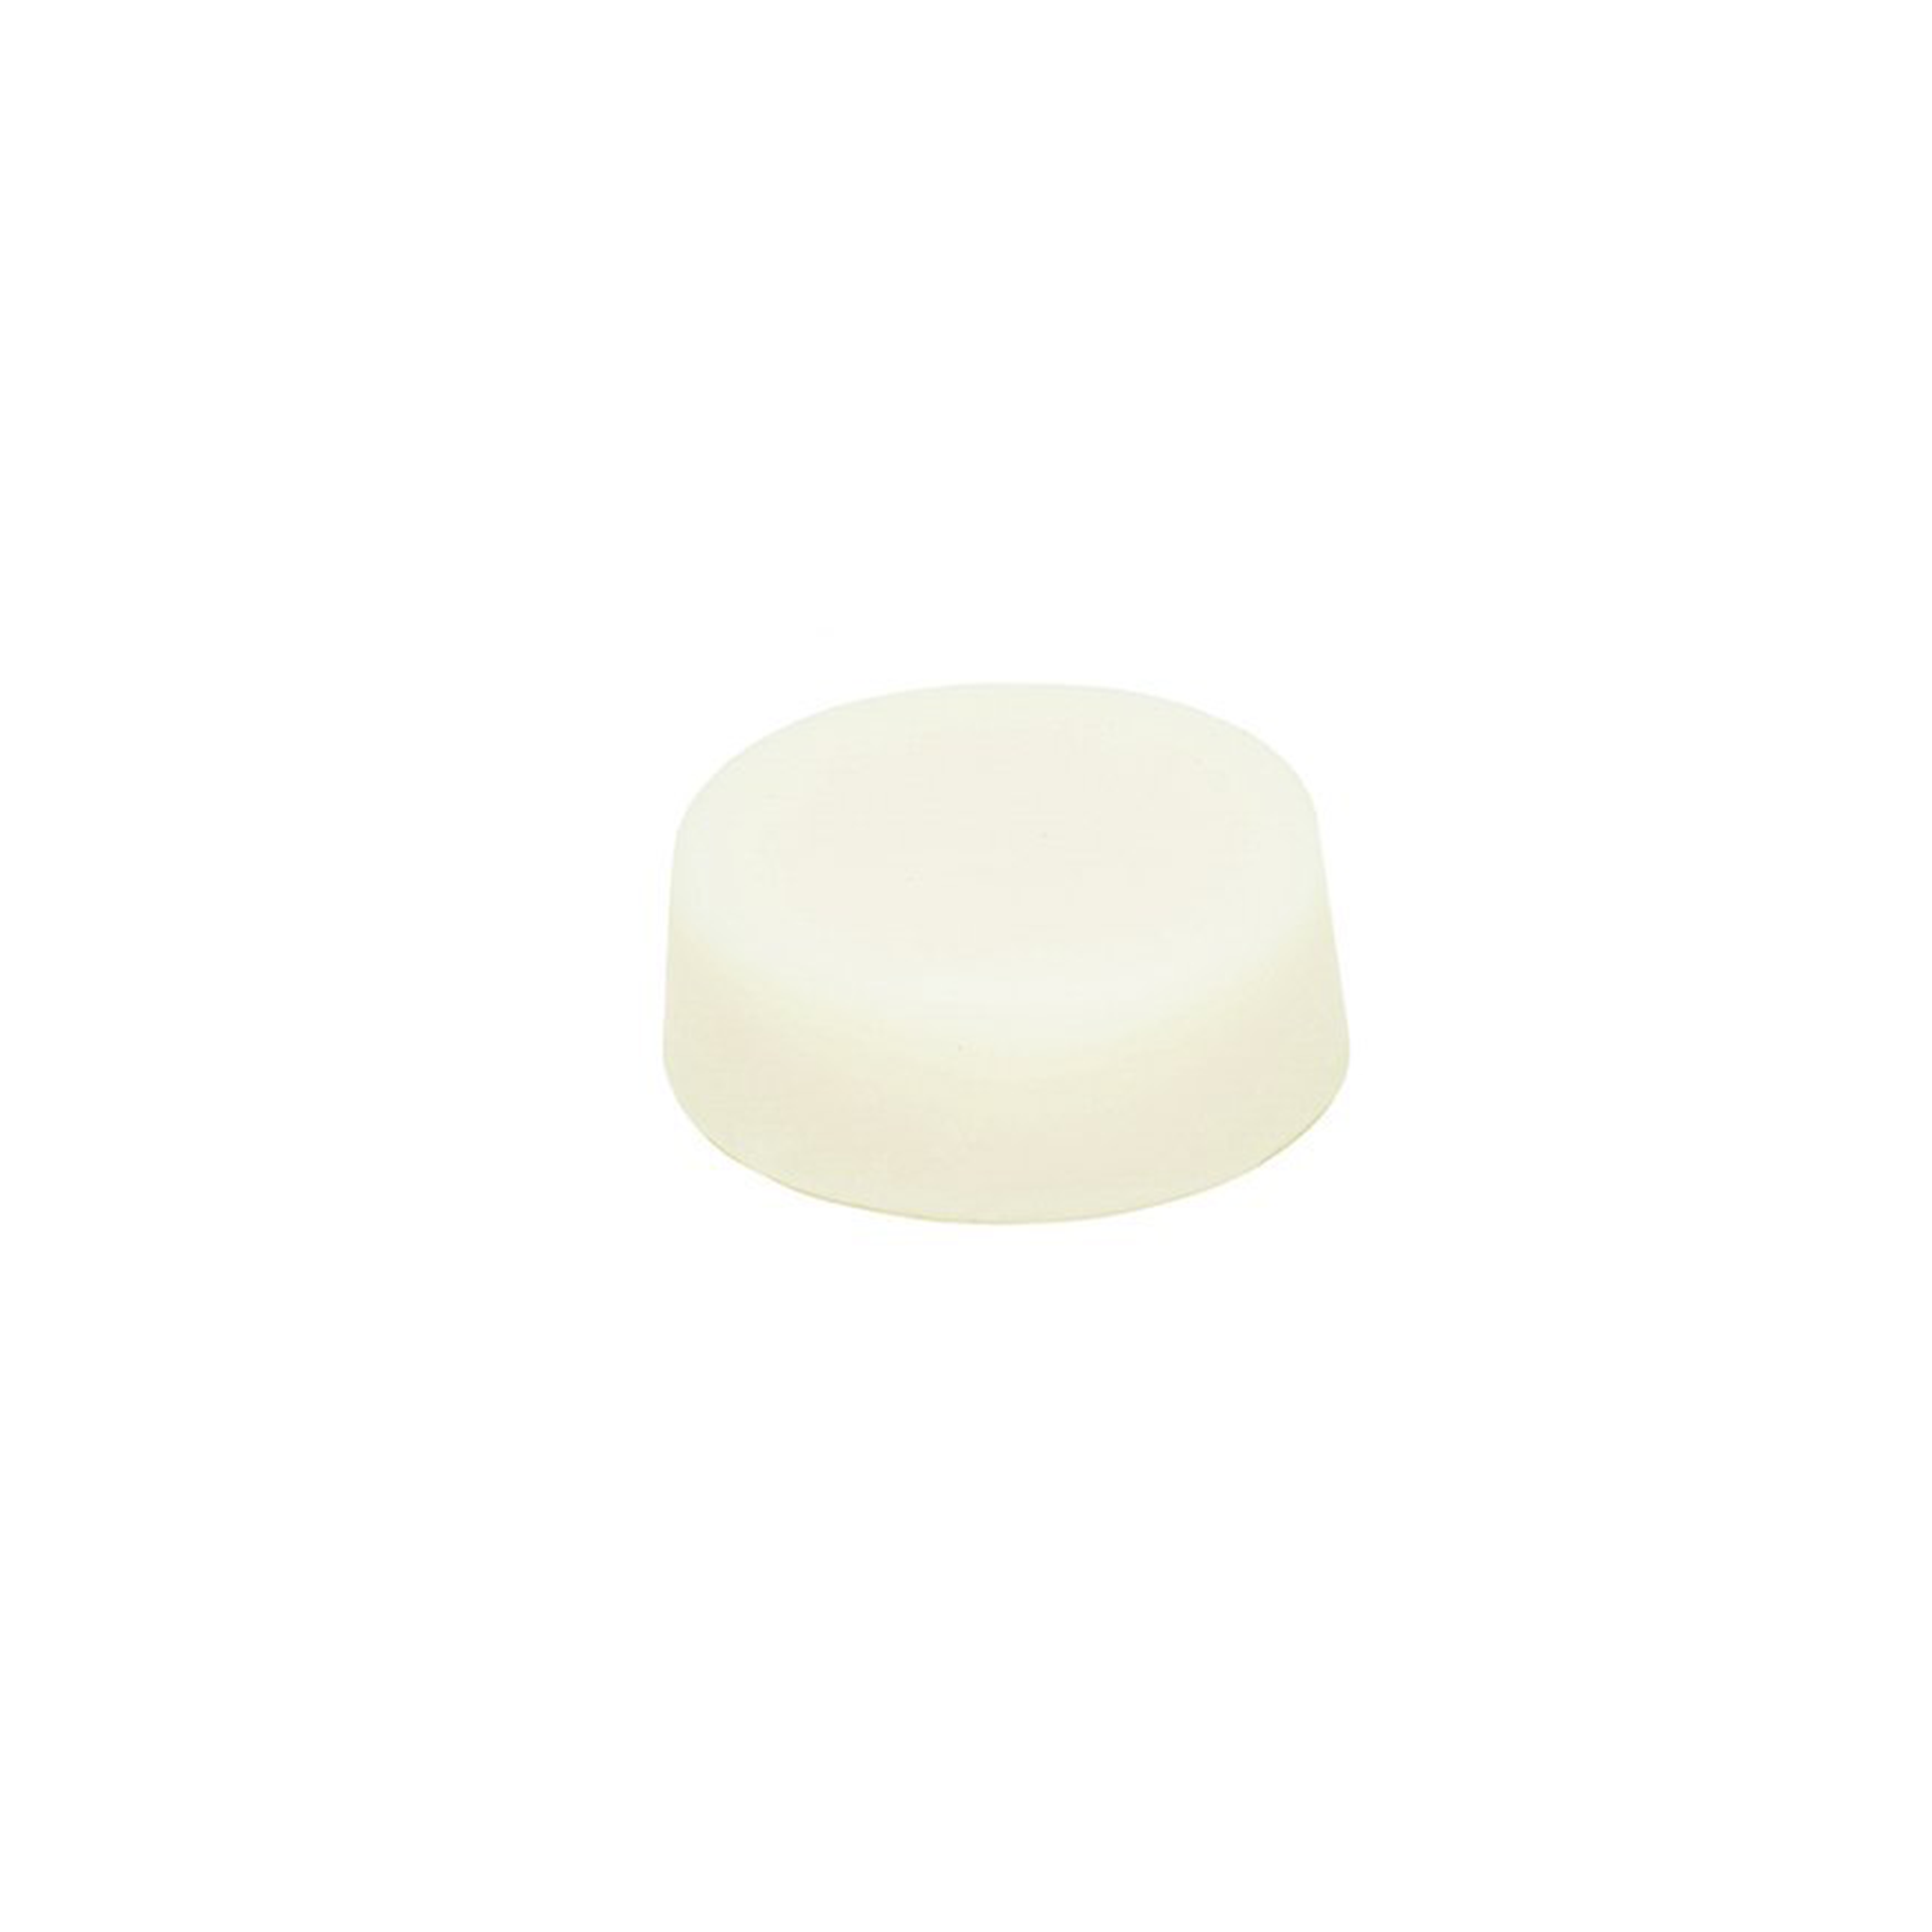 White conditioner bar on white background.